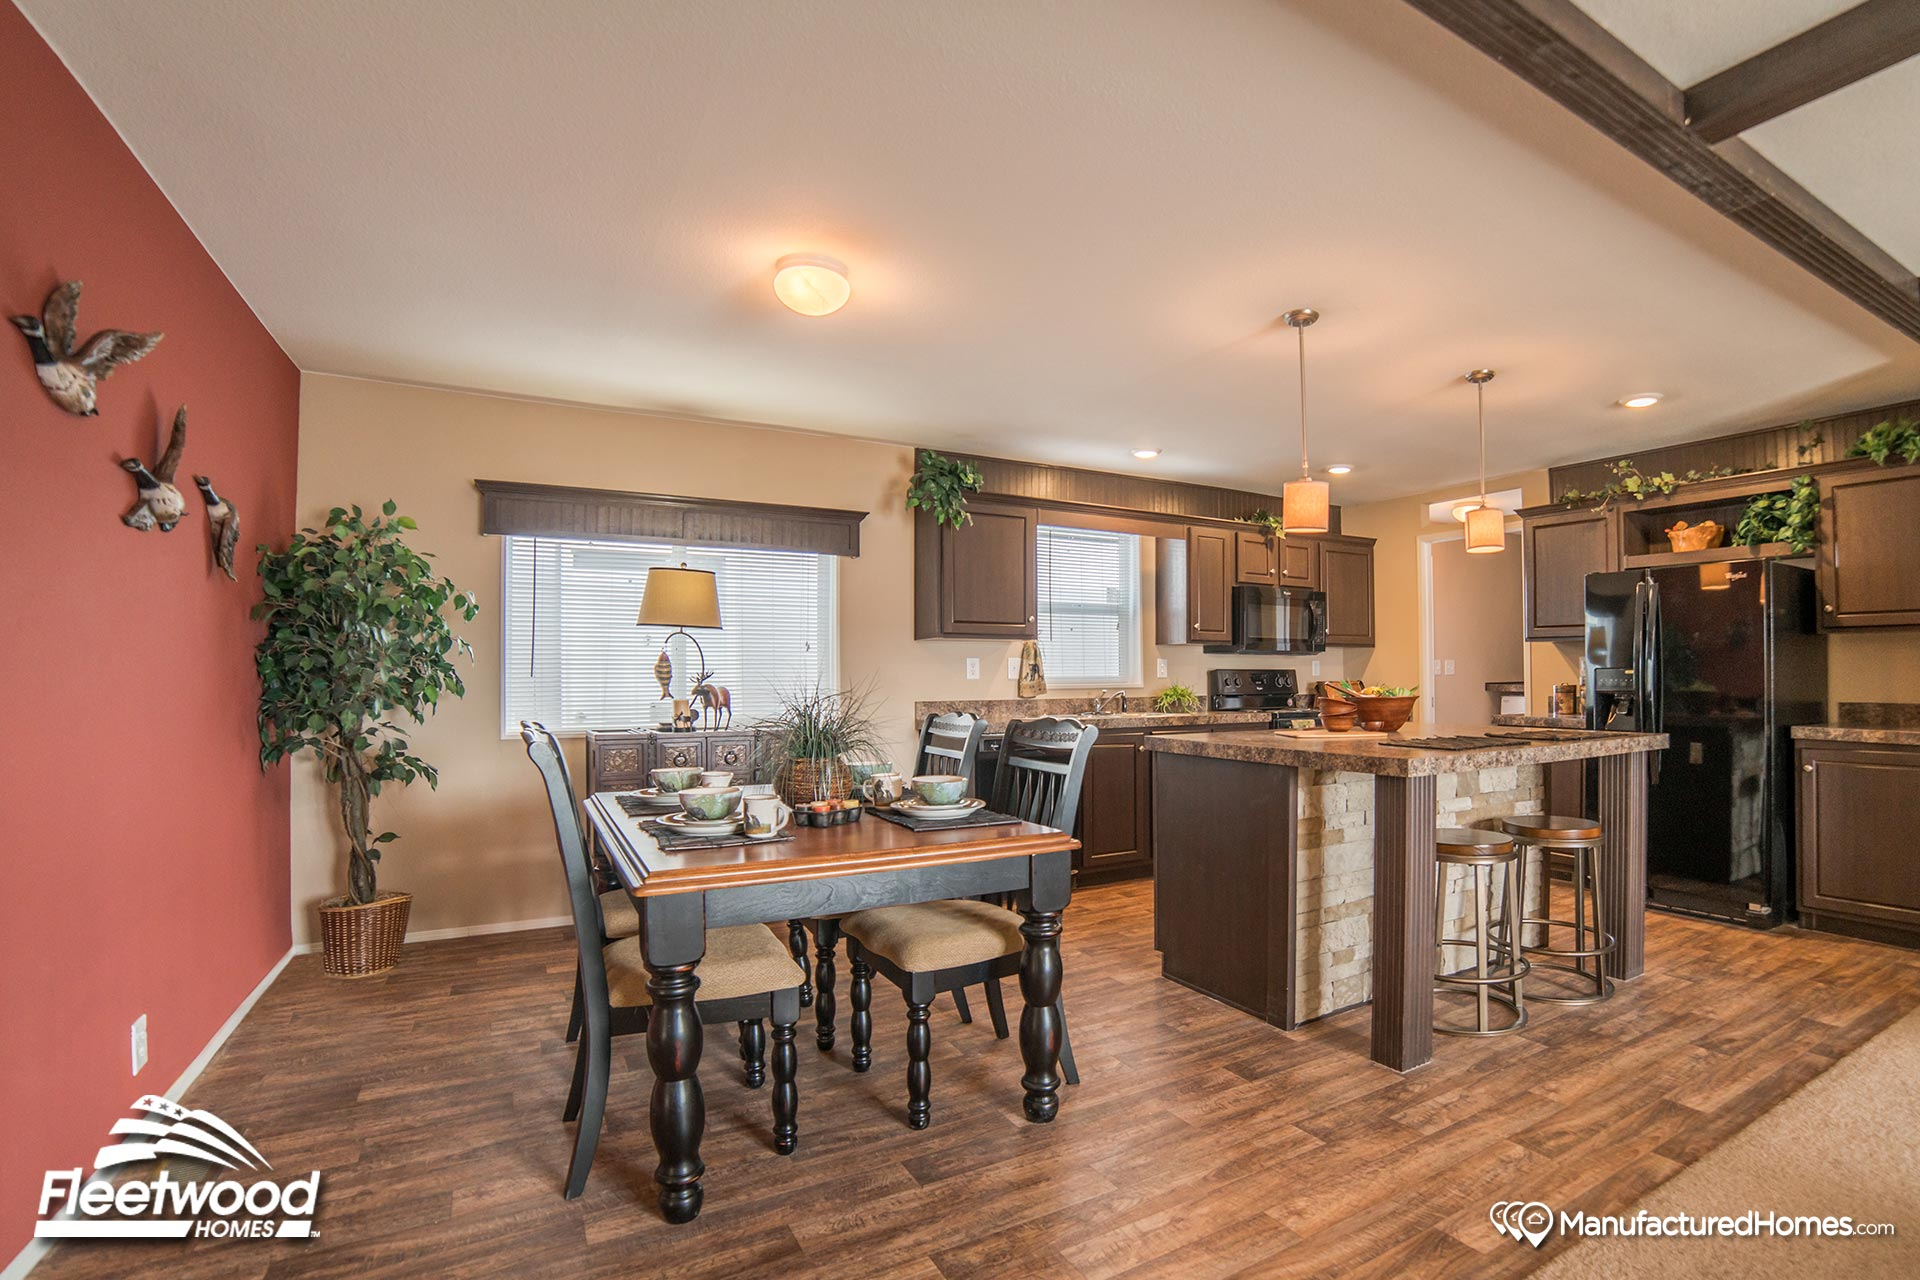 Fleetwood homes of nampa idaho manufactured and modular for Mobile modulare